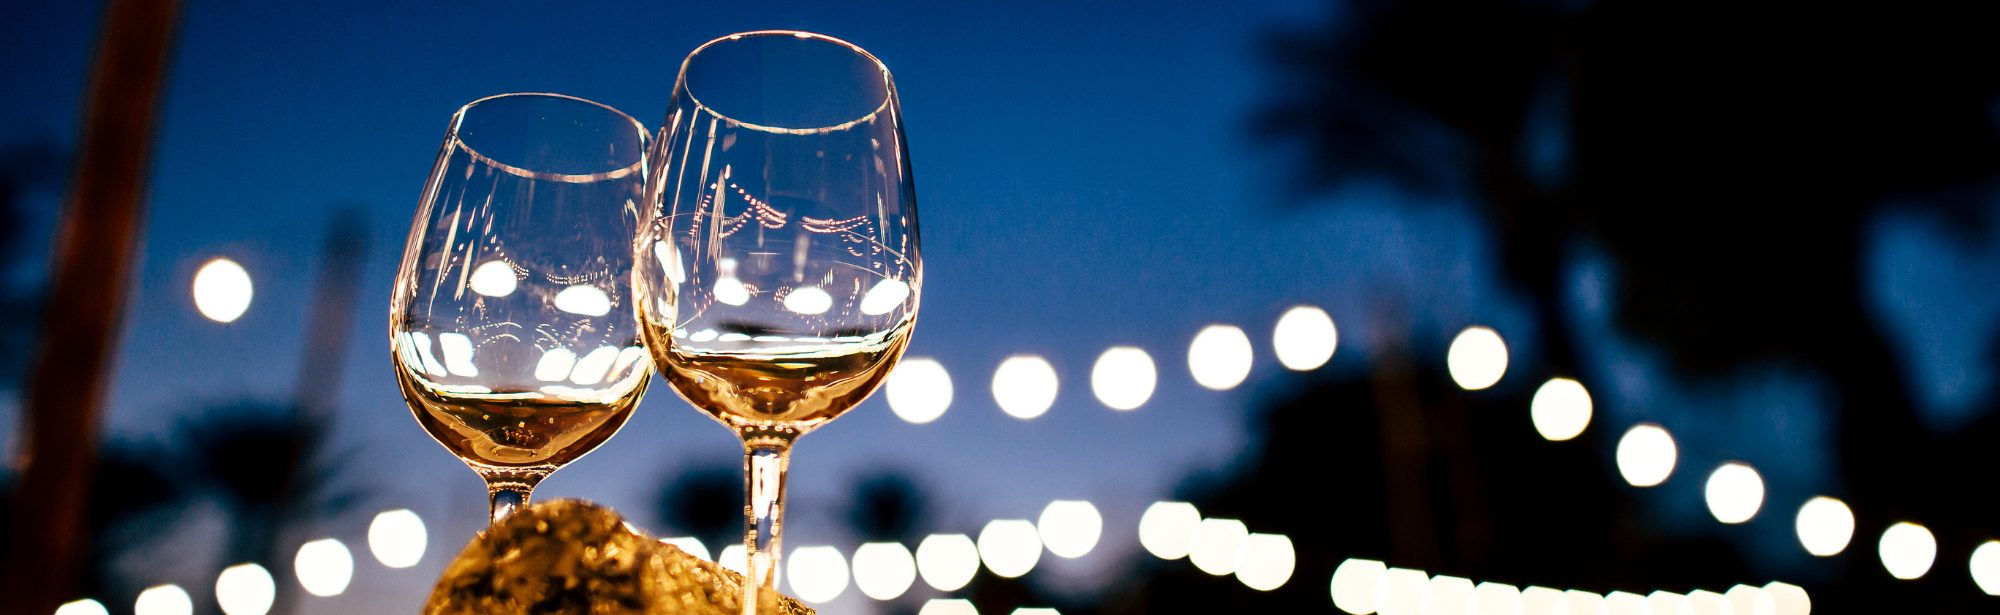 two wine glasses in front of a night sky with white lights